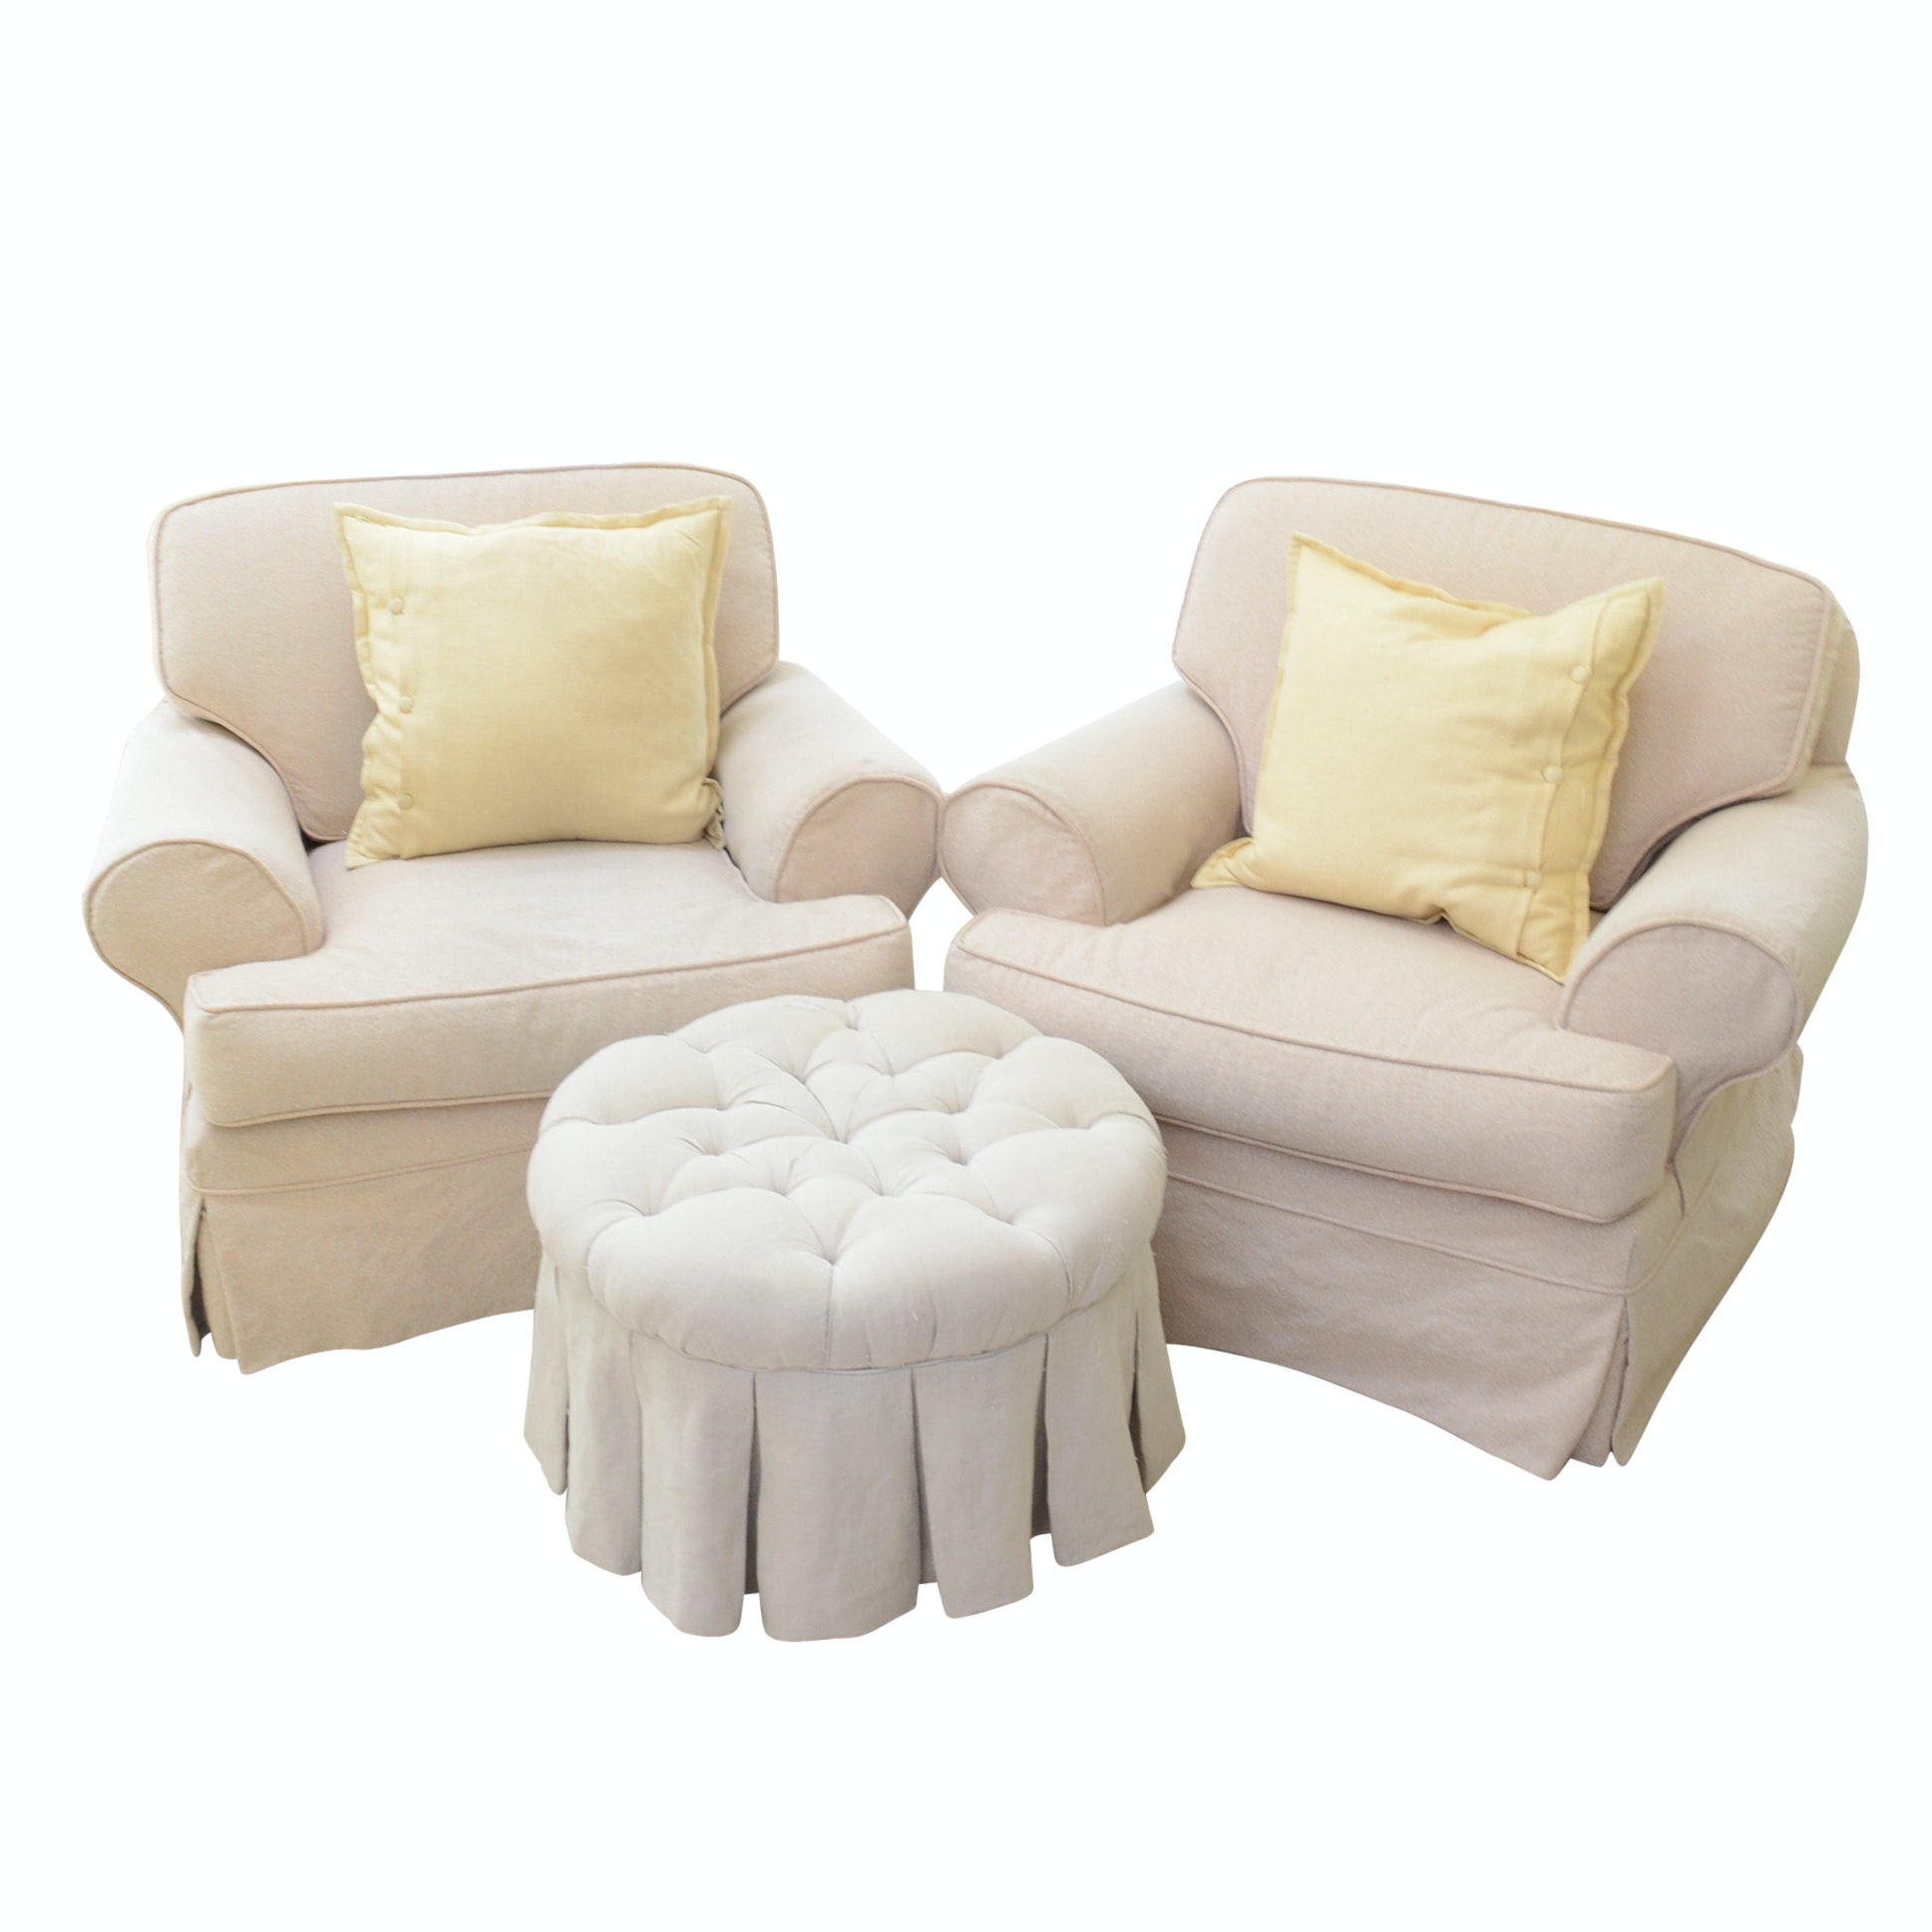 Pair of Slip-Covered Armchairs and Ottoman